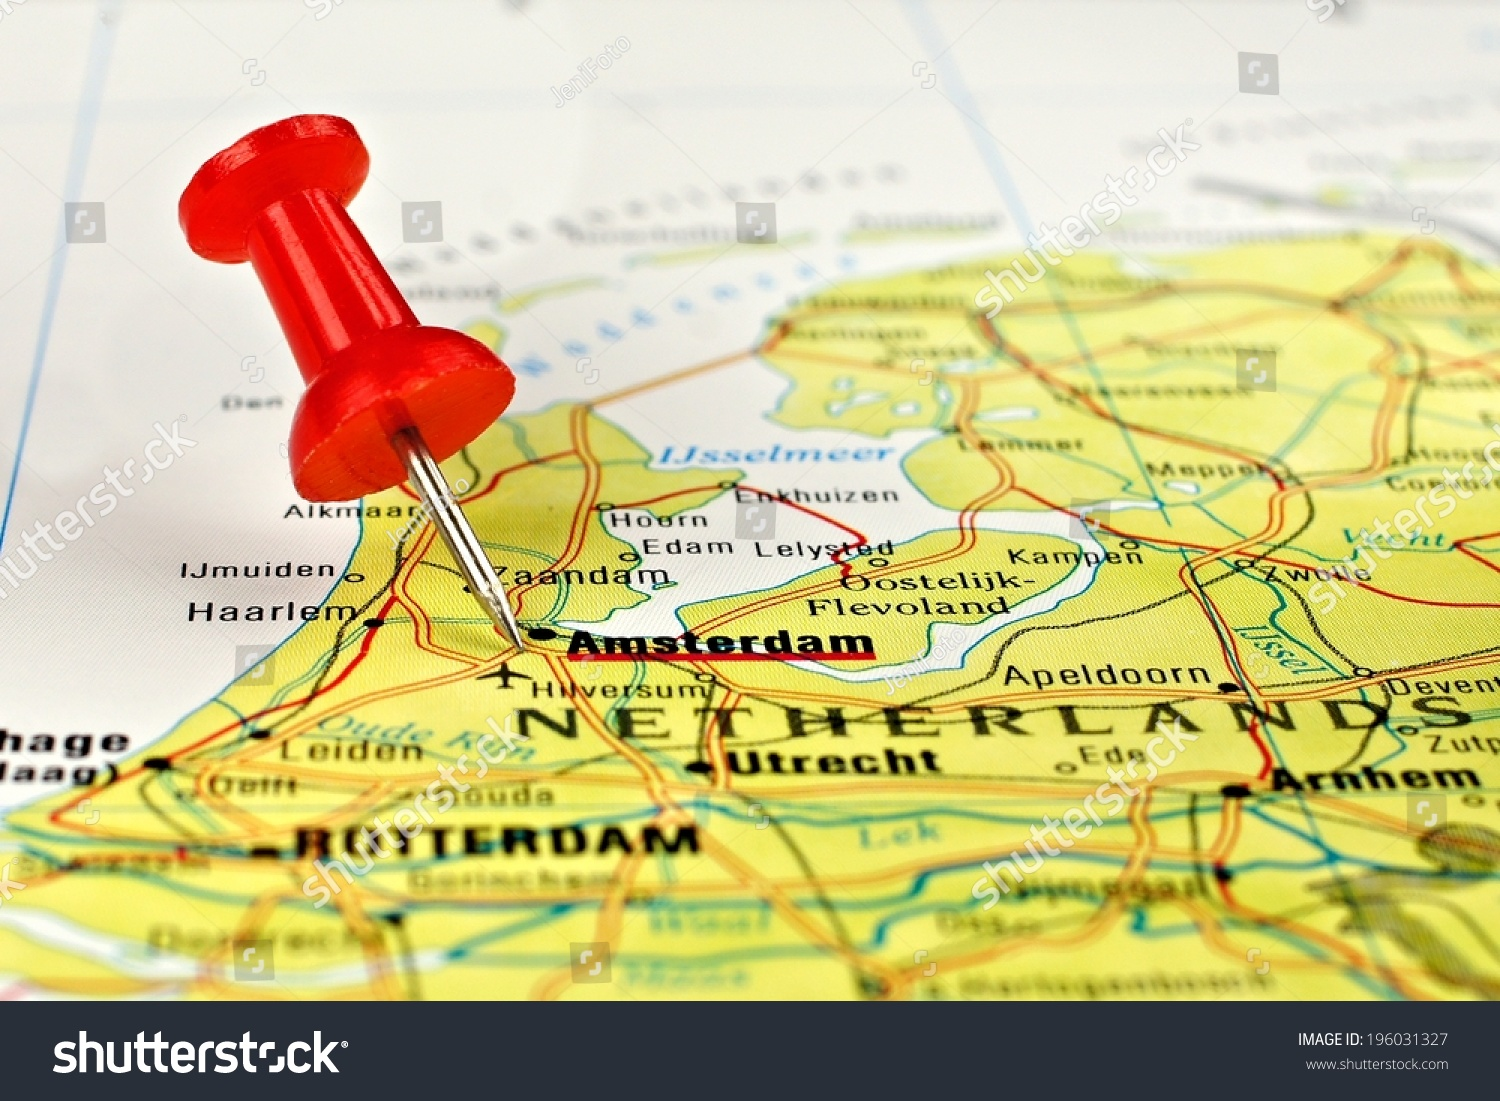 Close Amsterdam On Map Red Pin Stock Photo 196031327 Shutterstock